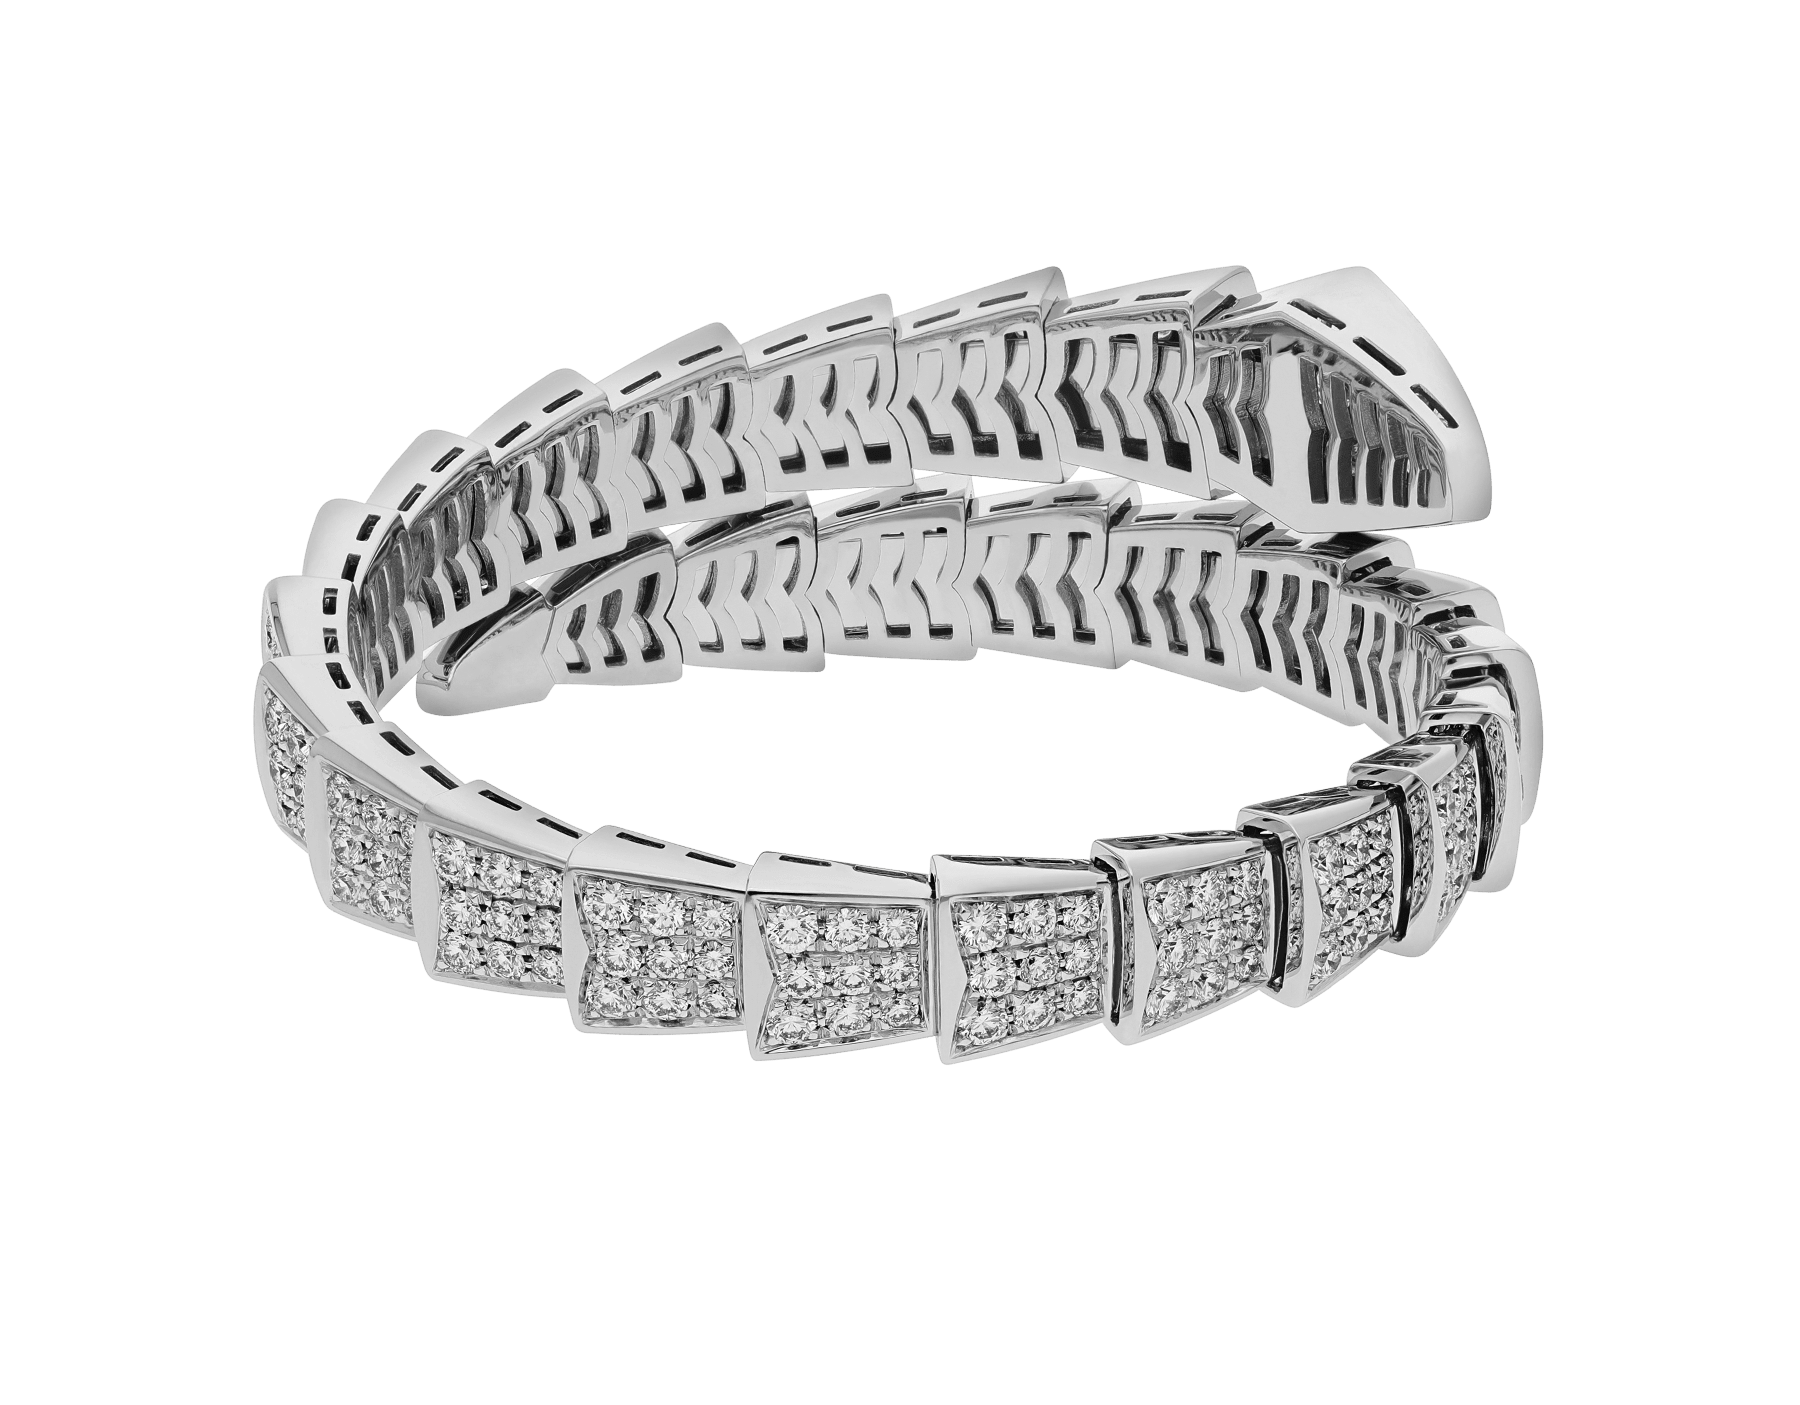 Serpenti Viper one-coil bracelet in 18 kt white gold, set with full pavé diamonds. BR855231 image 3